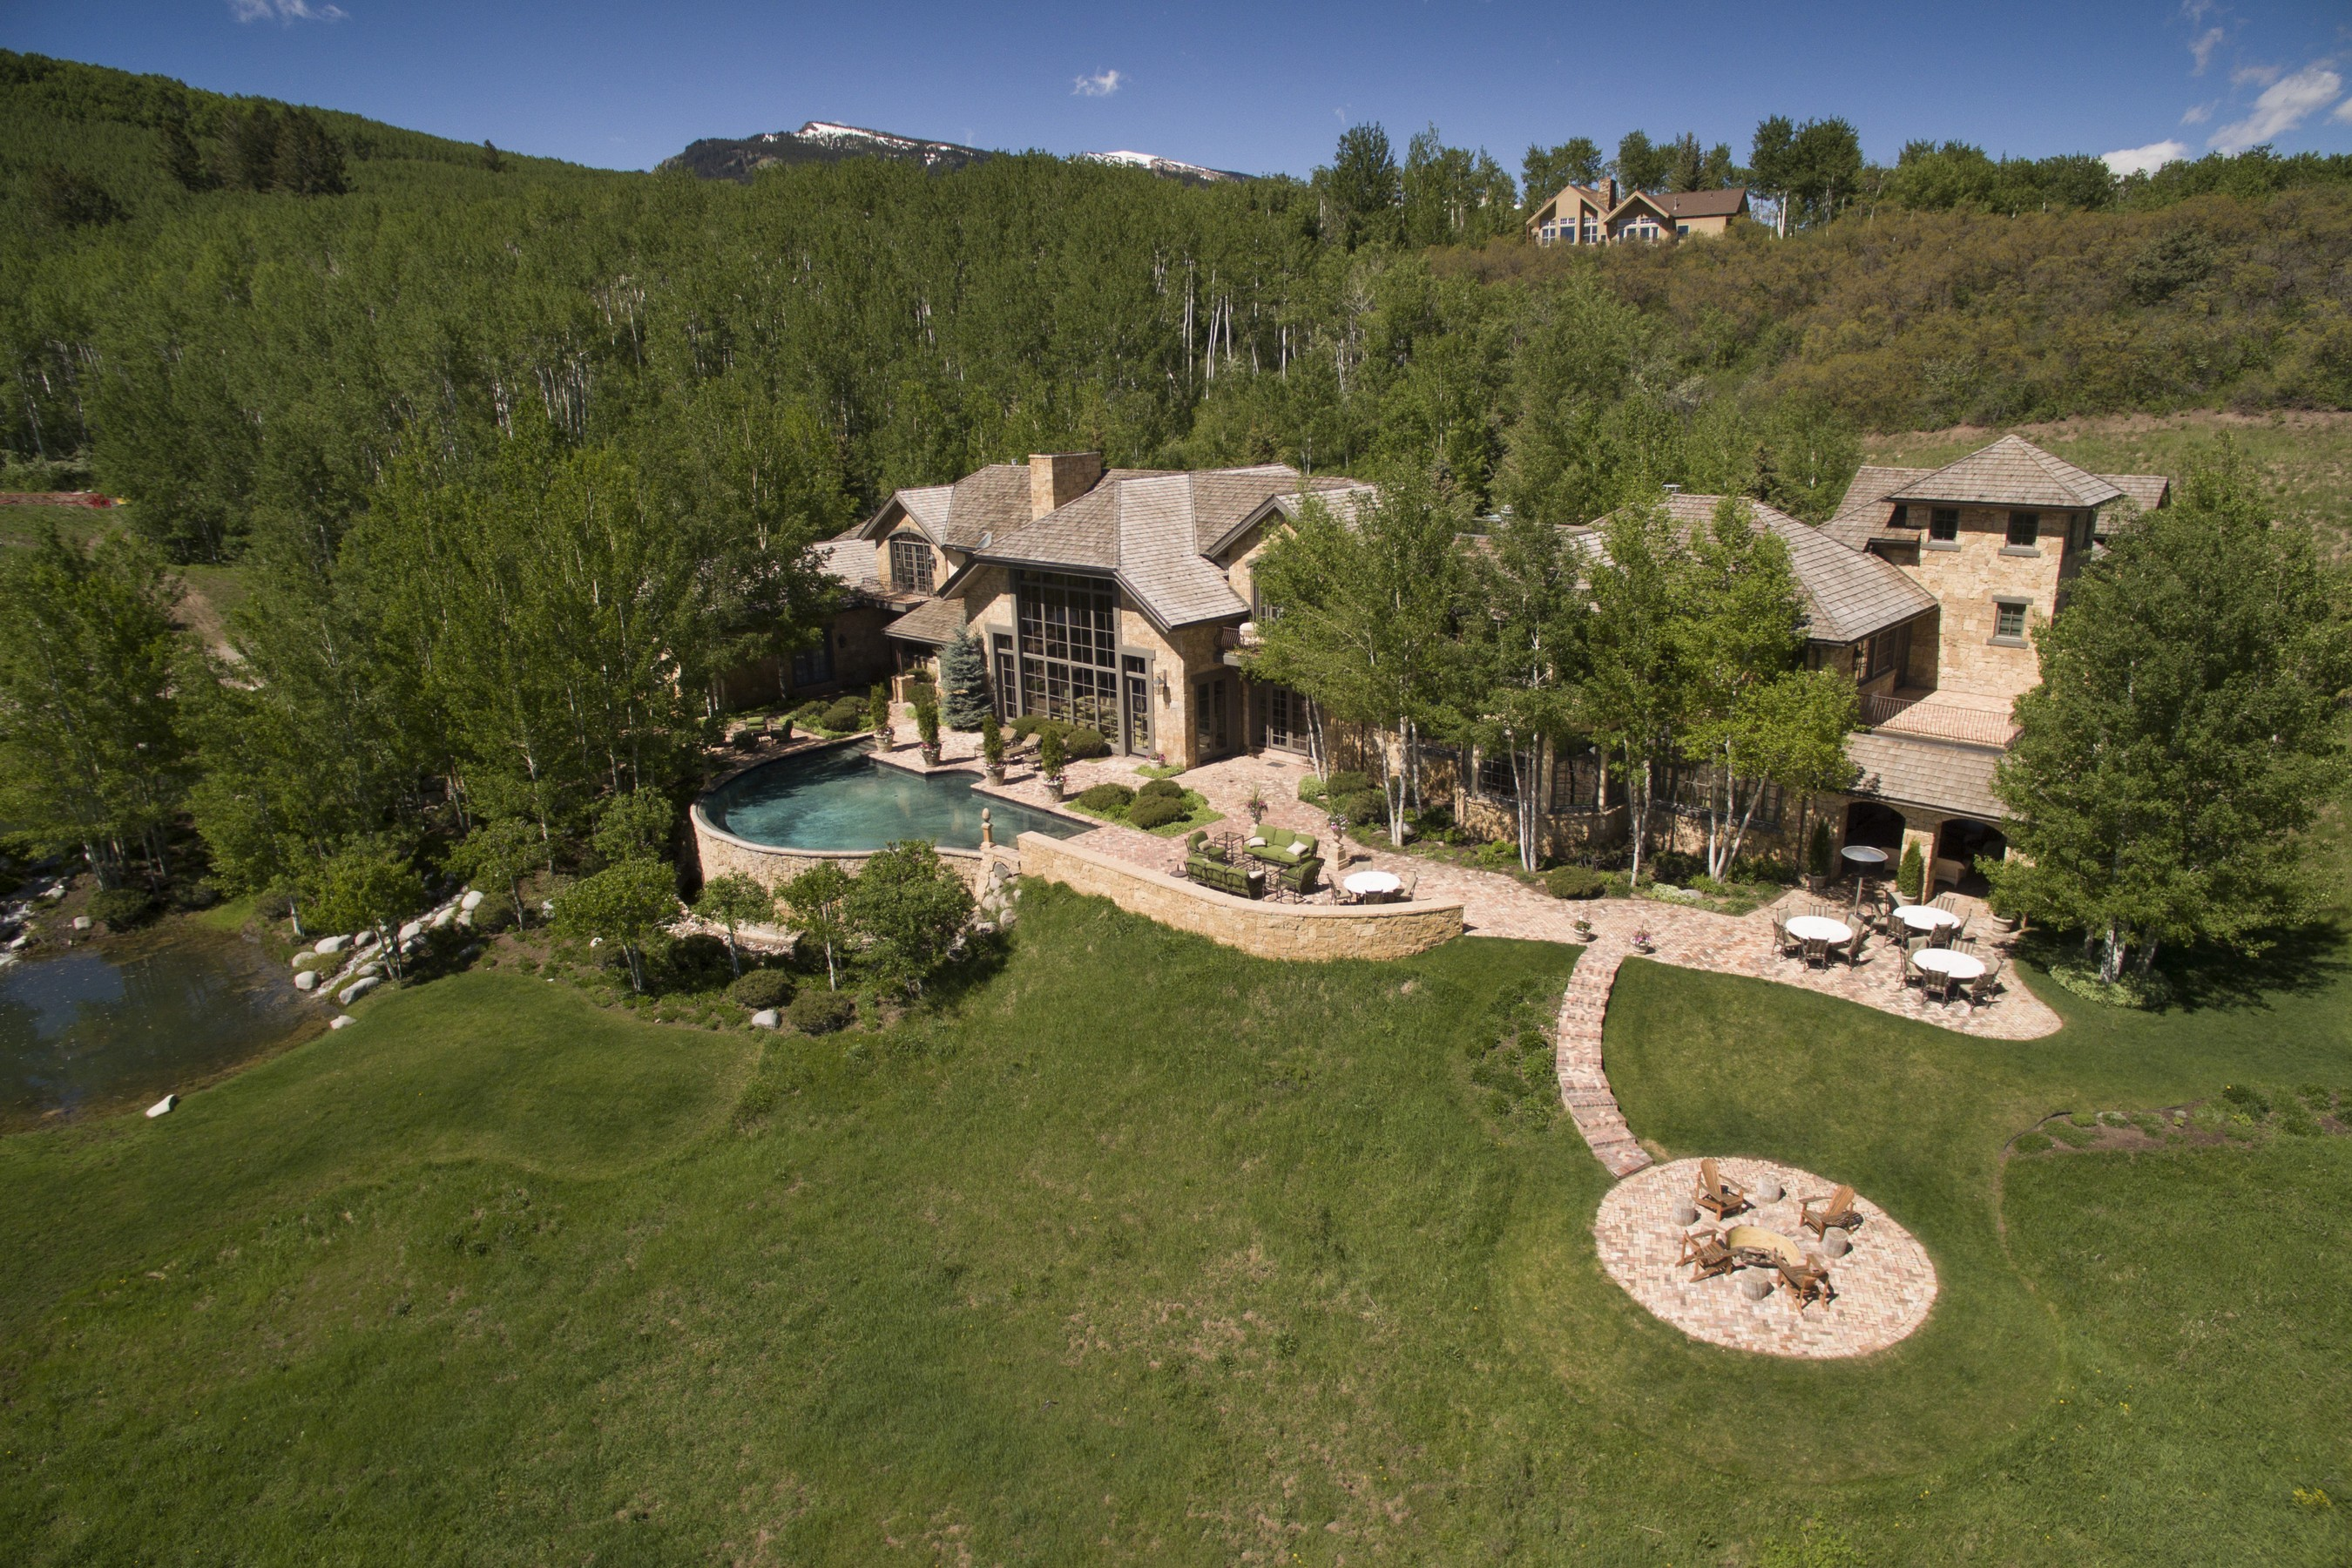 Single Family Home for Sale at Exclusive Owl Creek - 18,000 Sq Ft Estate - Location, Location, Location 170 Clay Lane West Aspen, Aspen, Colorado, 81611 United States